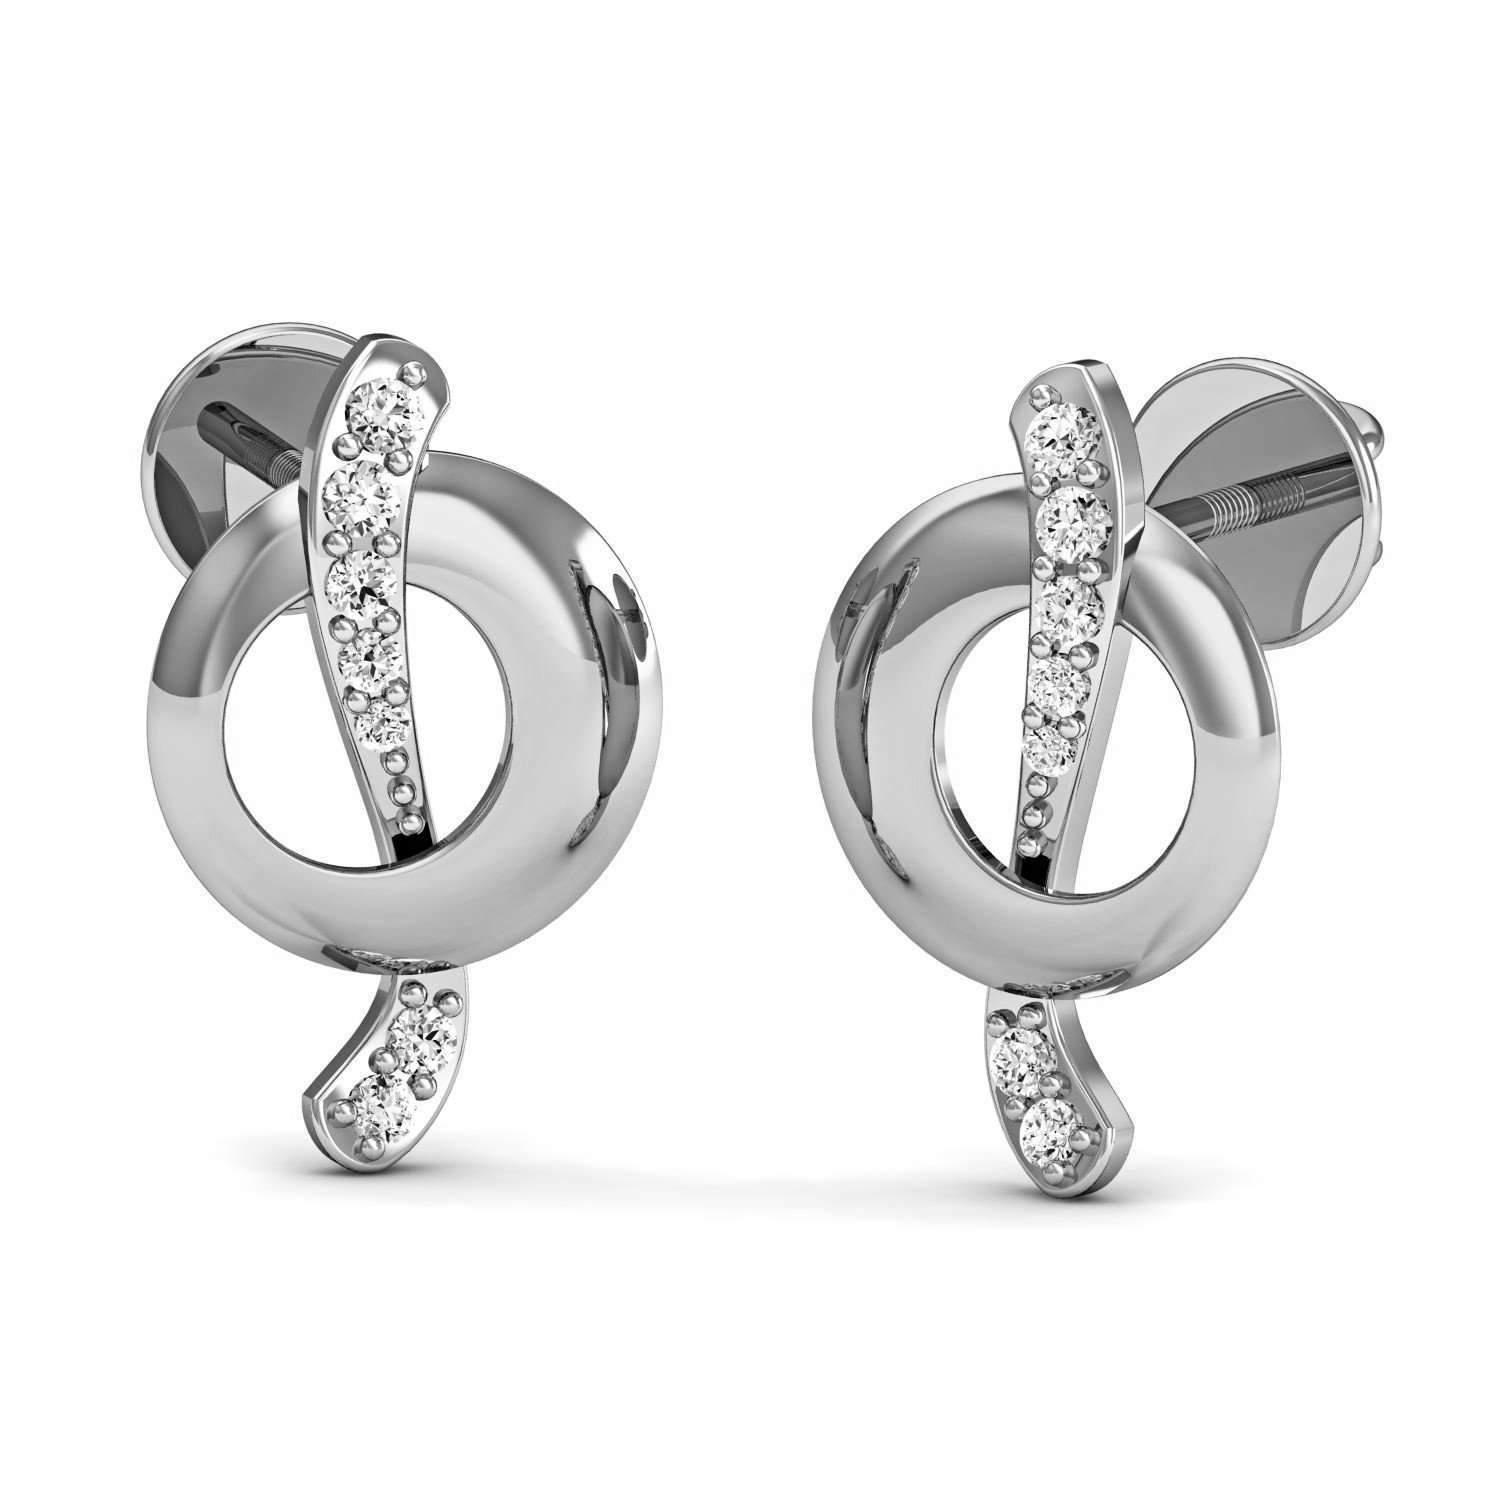 Diamoire Jewels Polished 10kt White Gold Inspired by nature Diamond Earrings 0U0PMZqt8